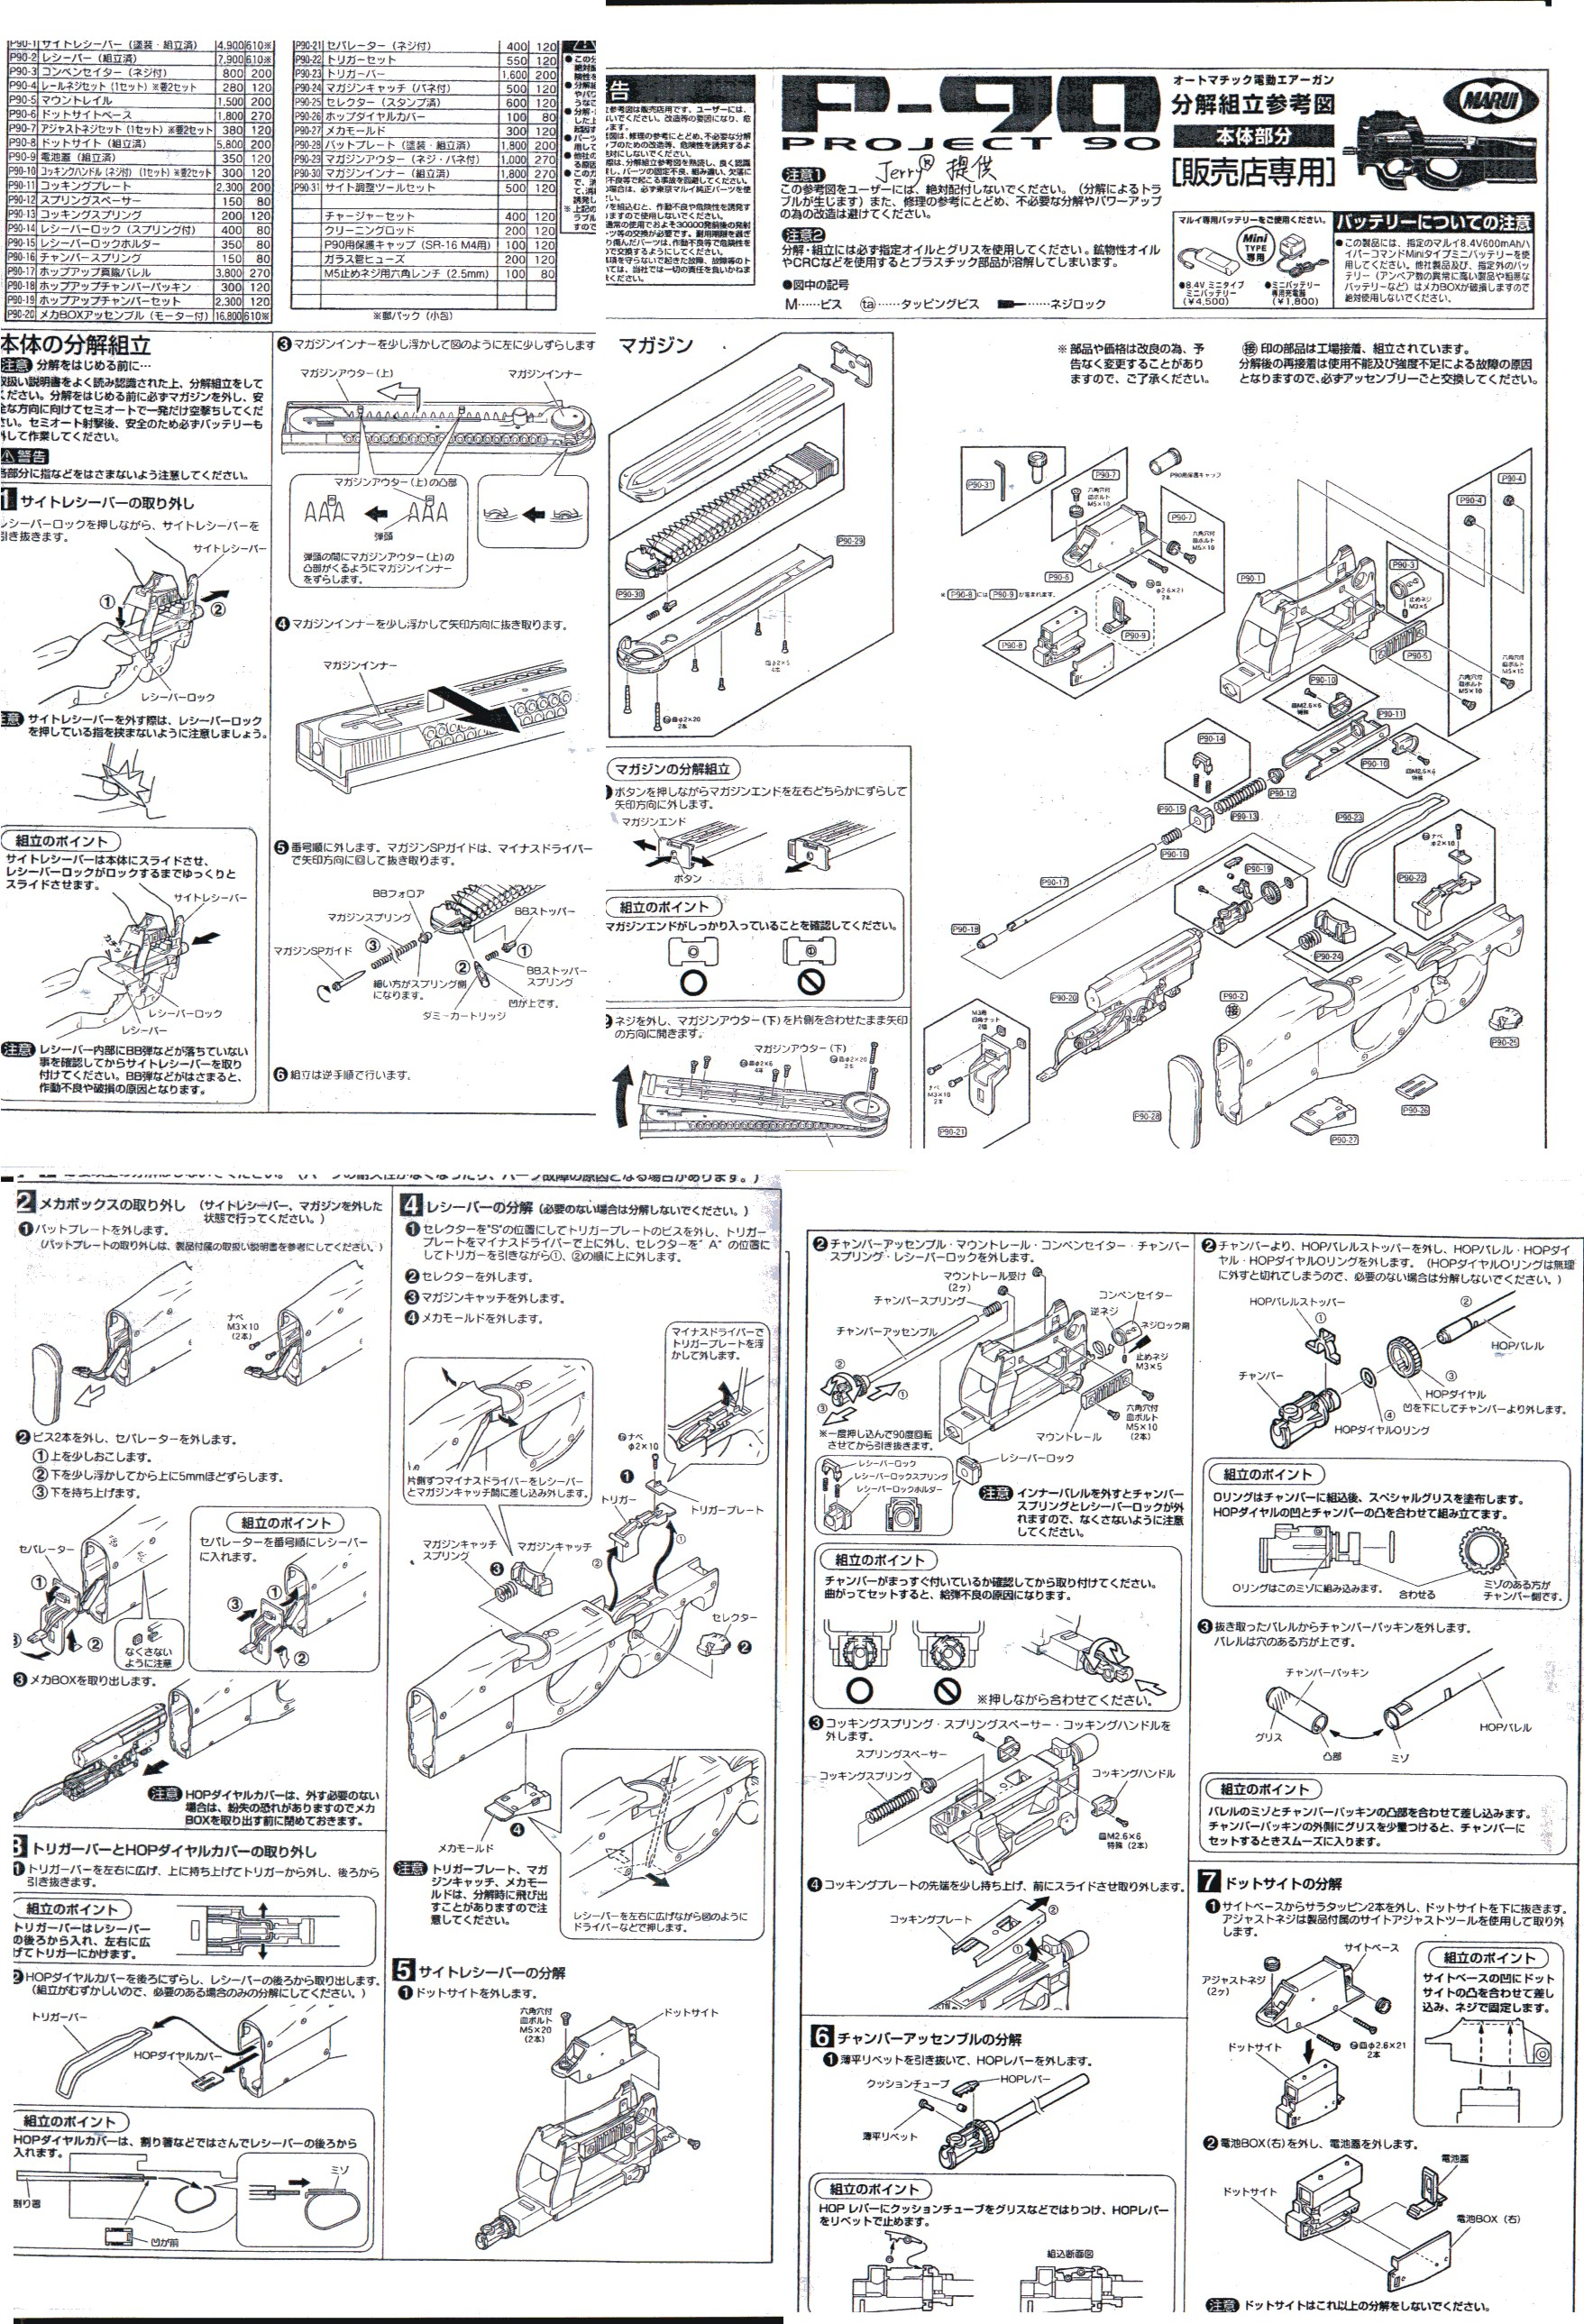 ruger ar 15 exploded diagram 2002 s10 headlight wiring p90 parts s andw 5906 elsavadorla